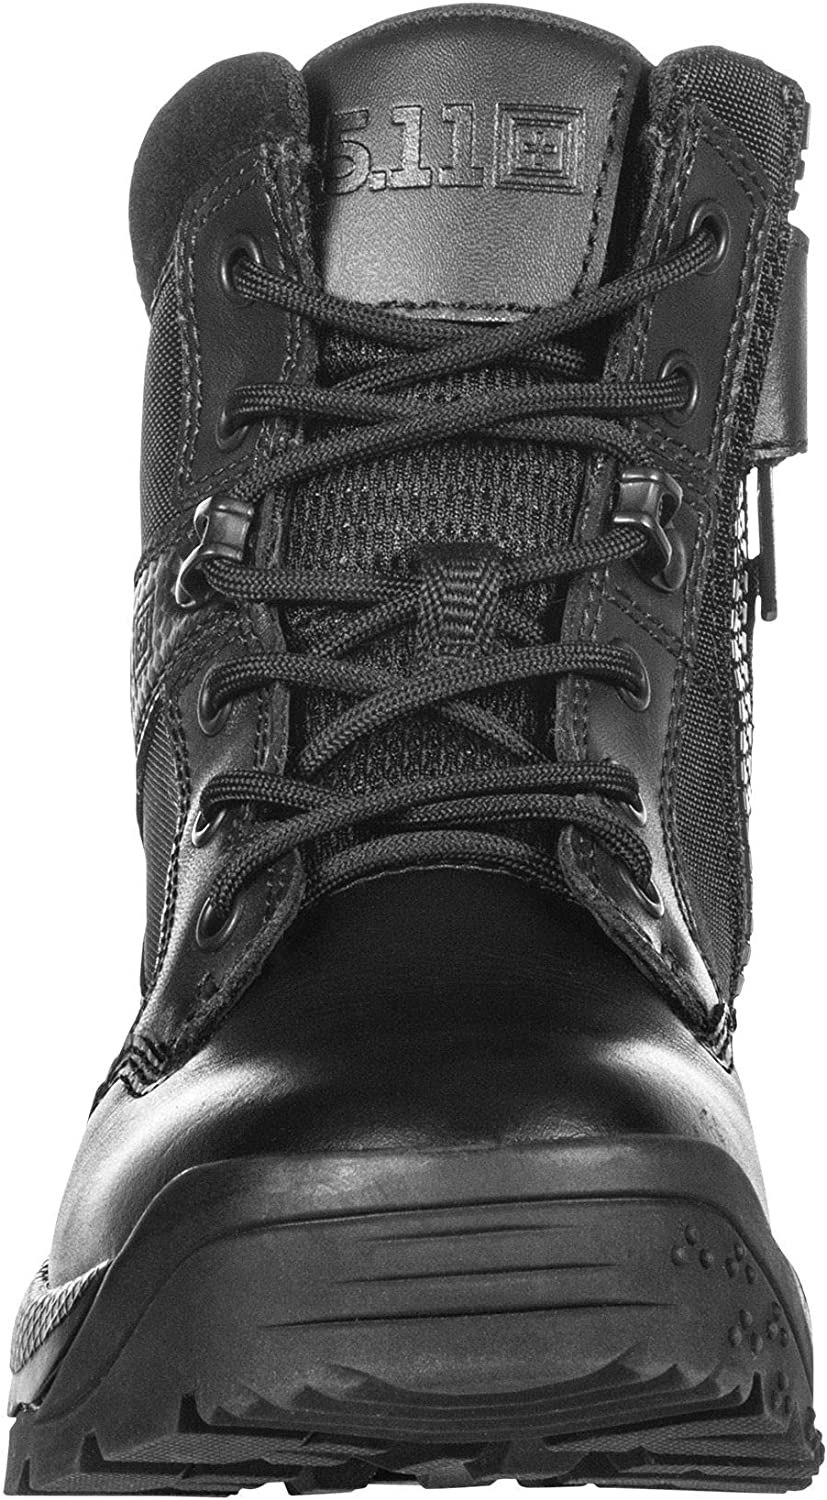 5.11 Womens ATAC 2.0 6 Tactical Side Zip Military Combat Boot Style 12404 Black